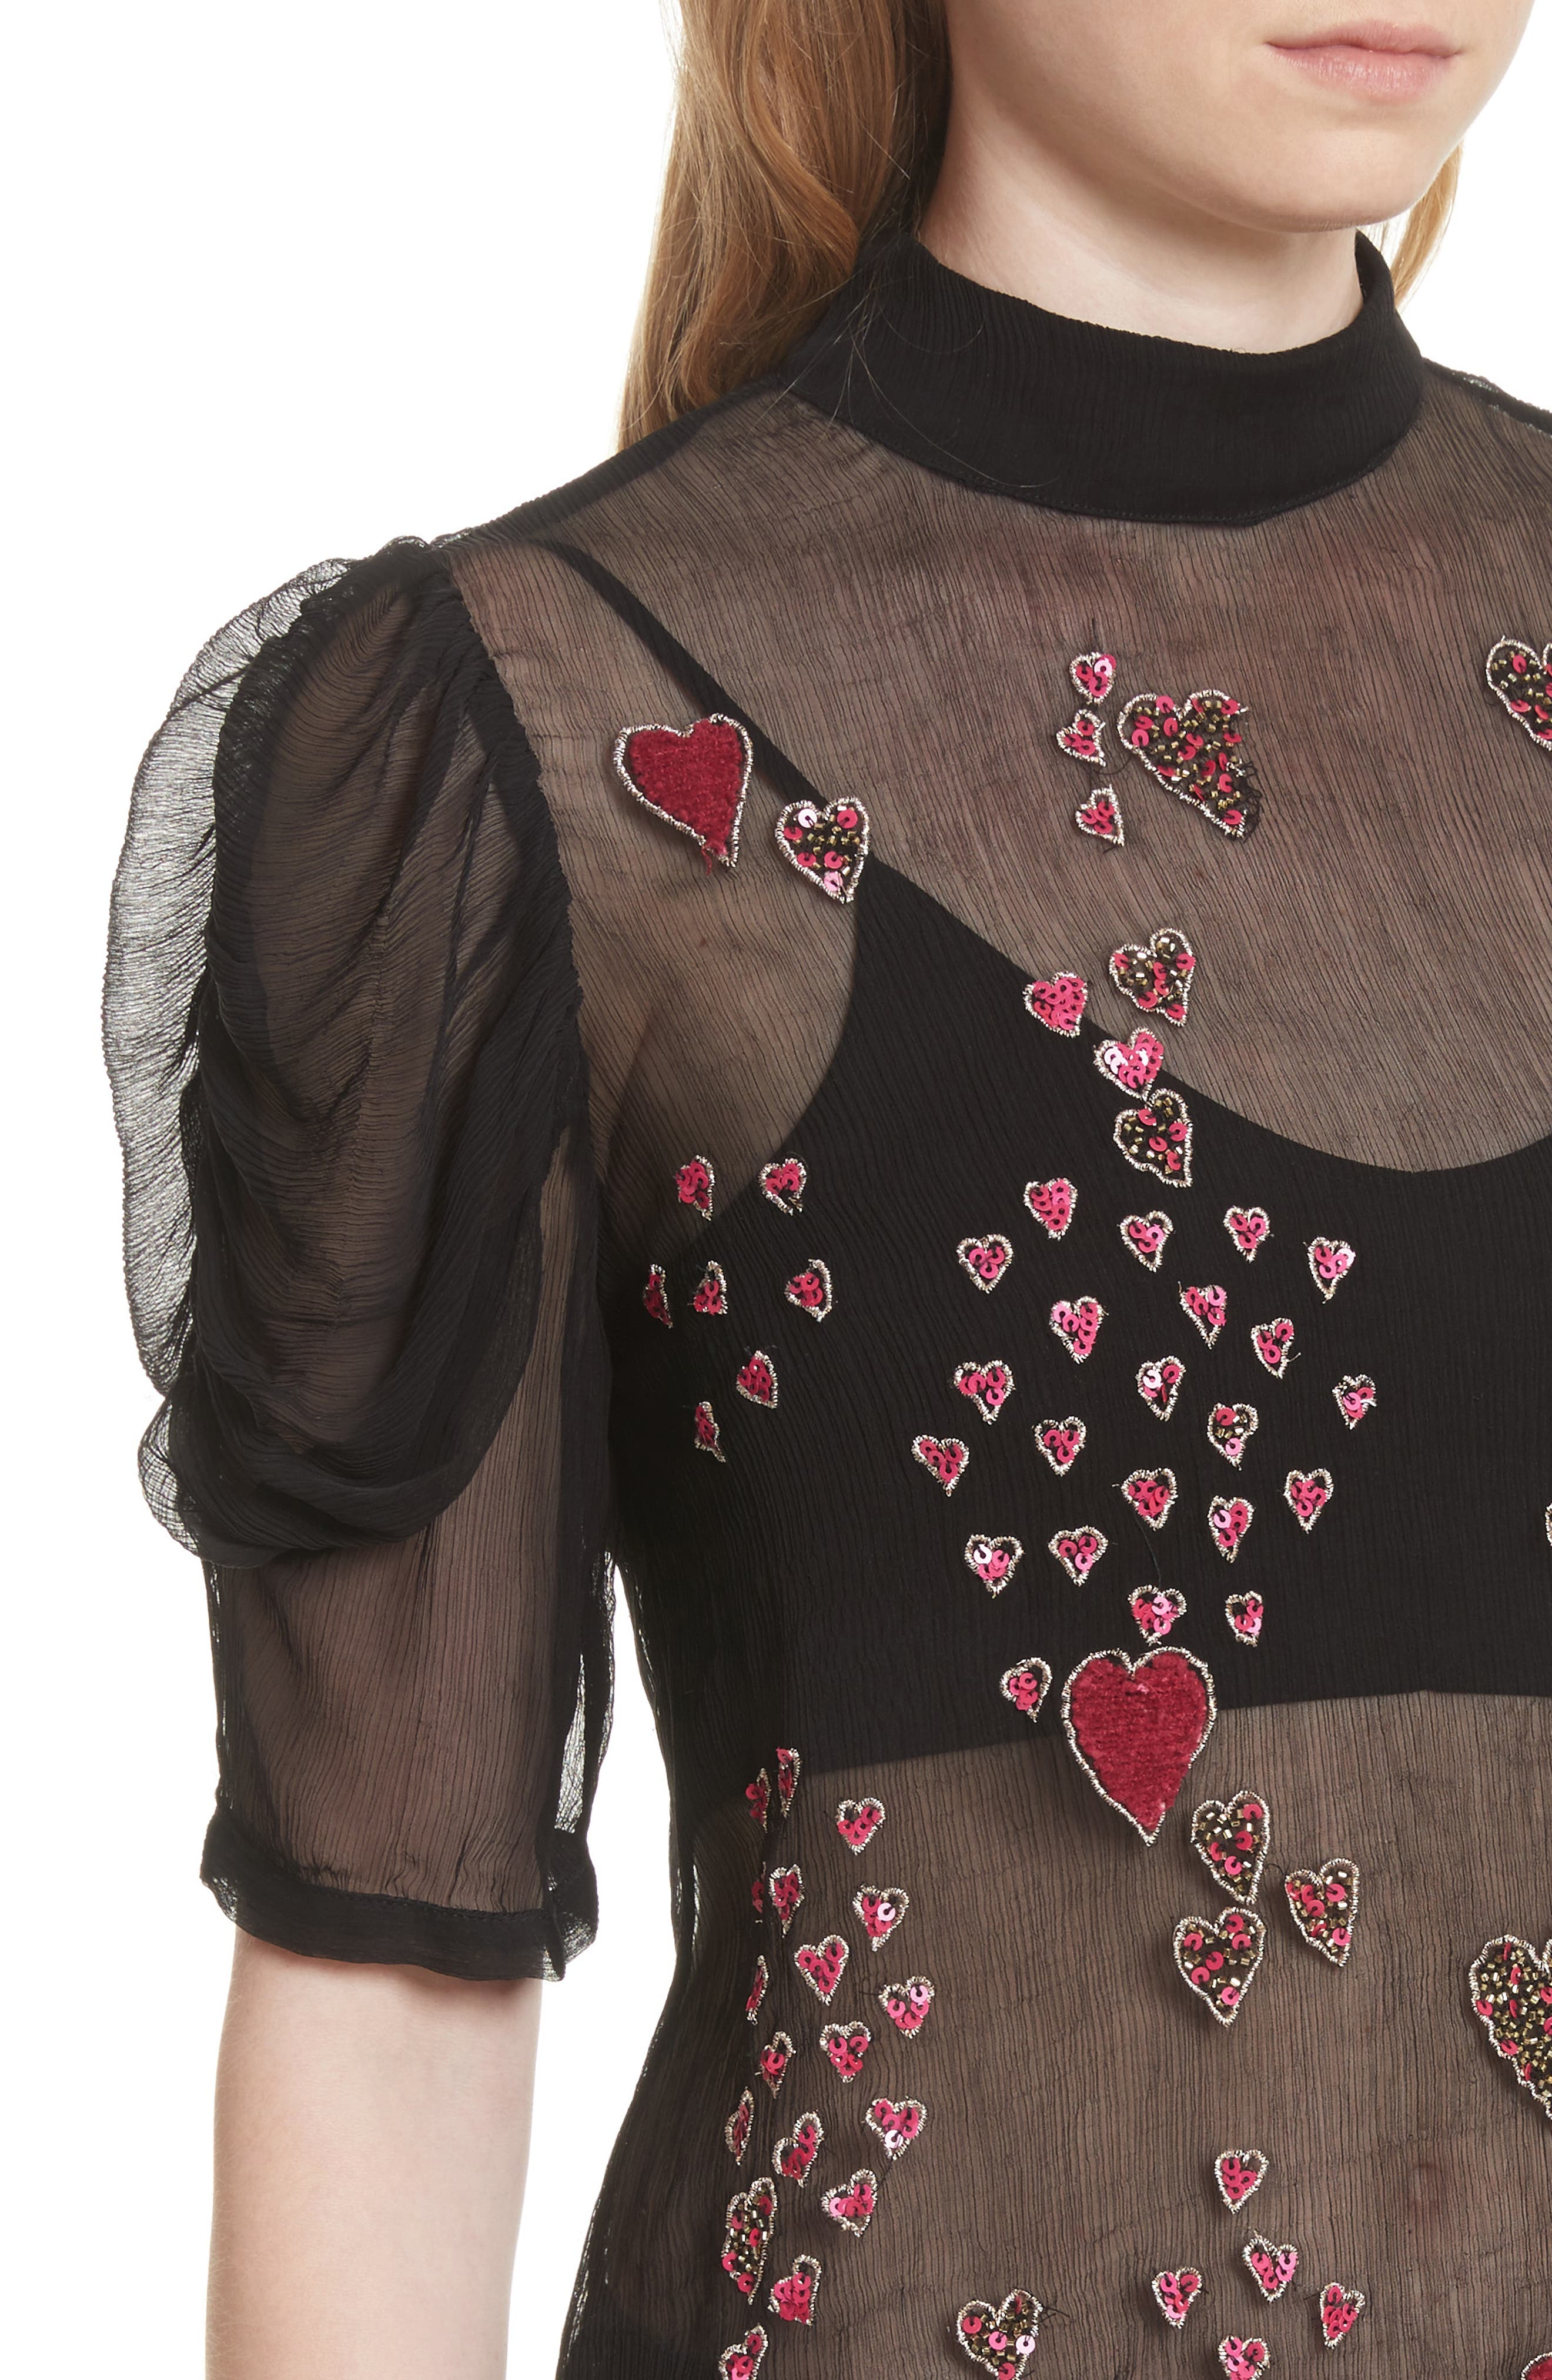 So in Love Embroidered Blouse,                             Alternate thumbnail 4, color,                             001